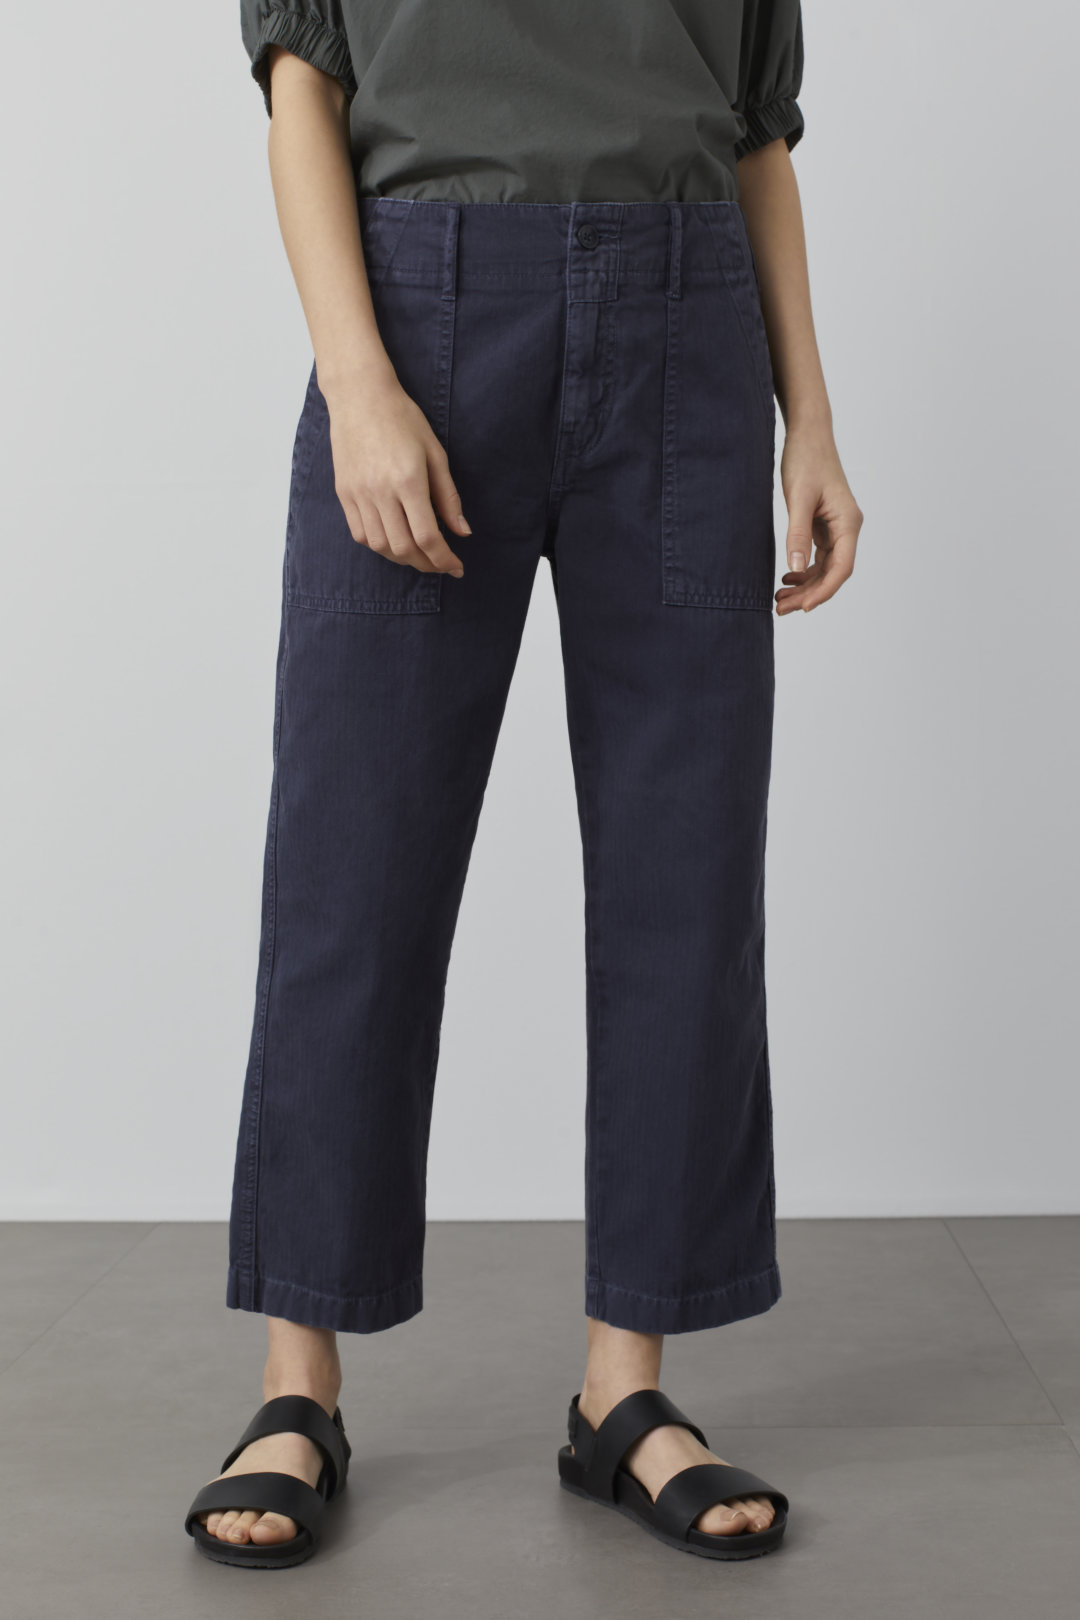 closed worker pants